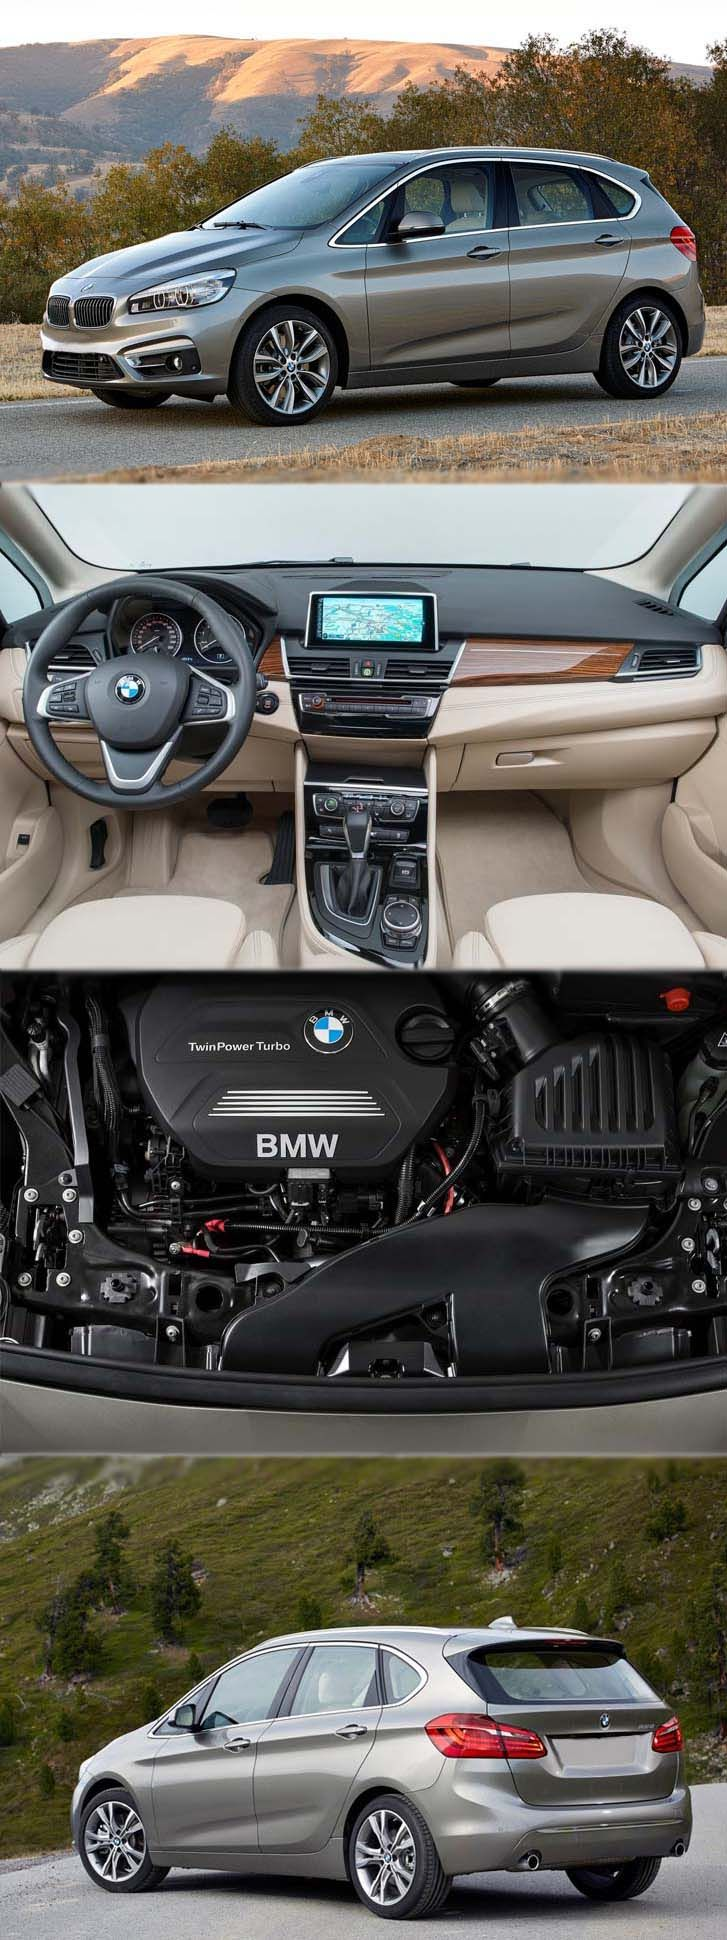 BMW 220d xDrive Gran Tourer Engine #BMW #xDrive is #ExuberantDrive with #SturdyEngine #StylishBody